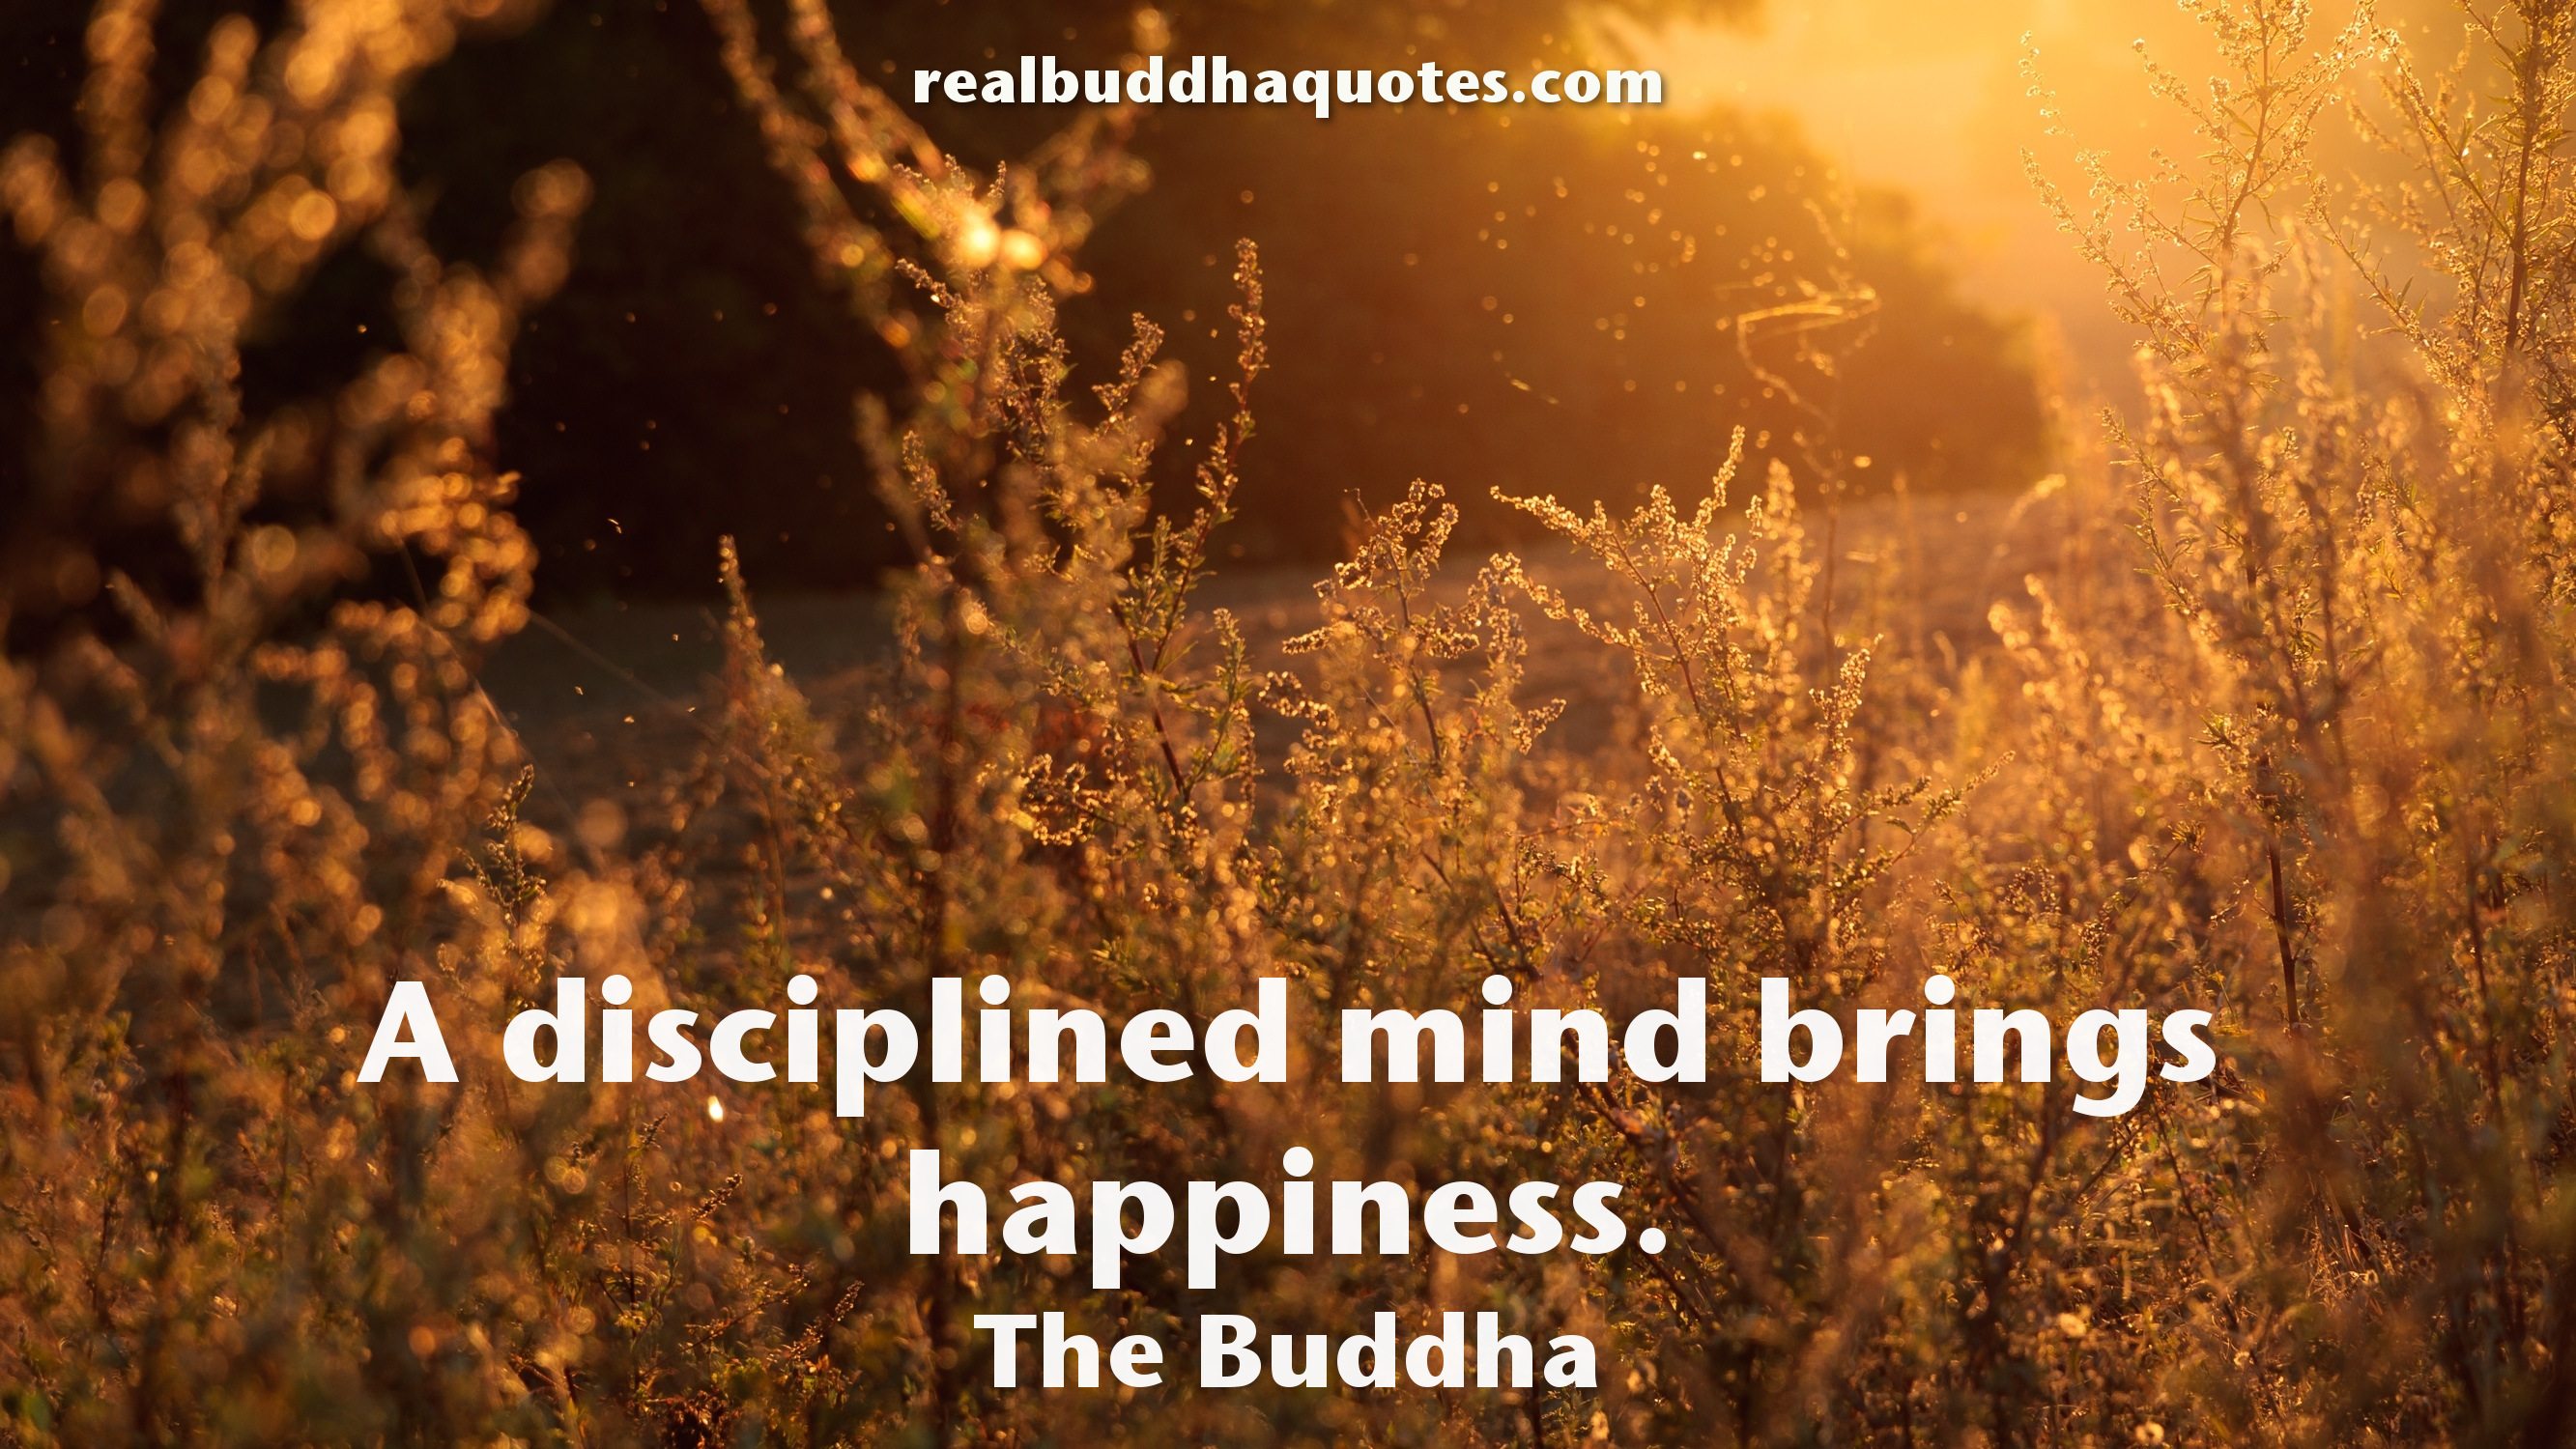 Best Buddha Quotes Happiness  Real Buddha Quotes